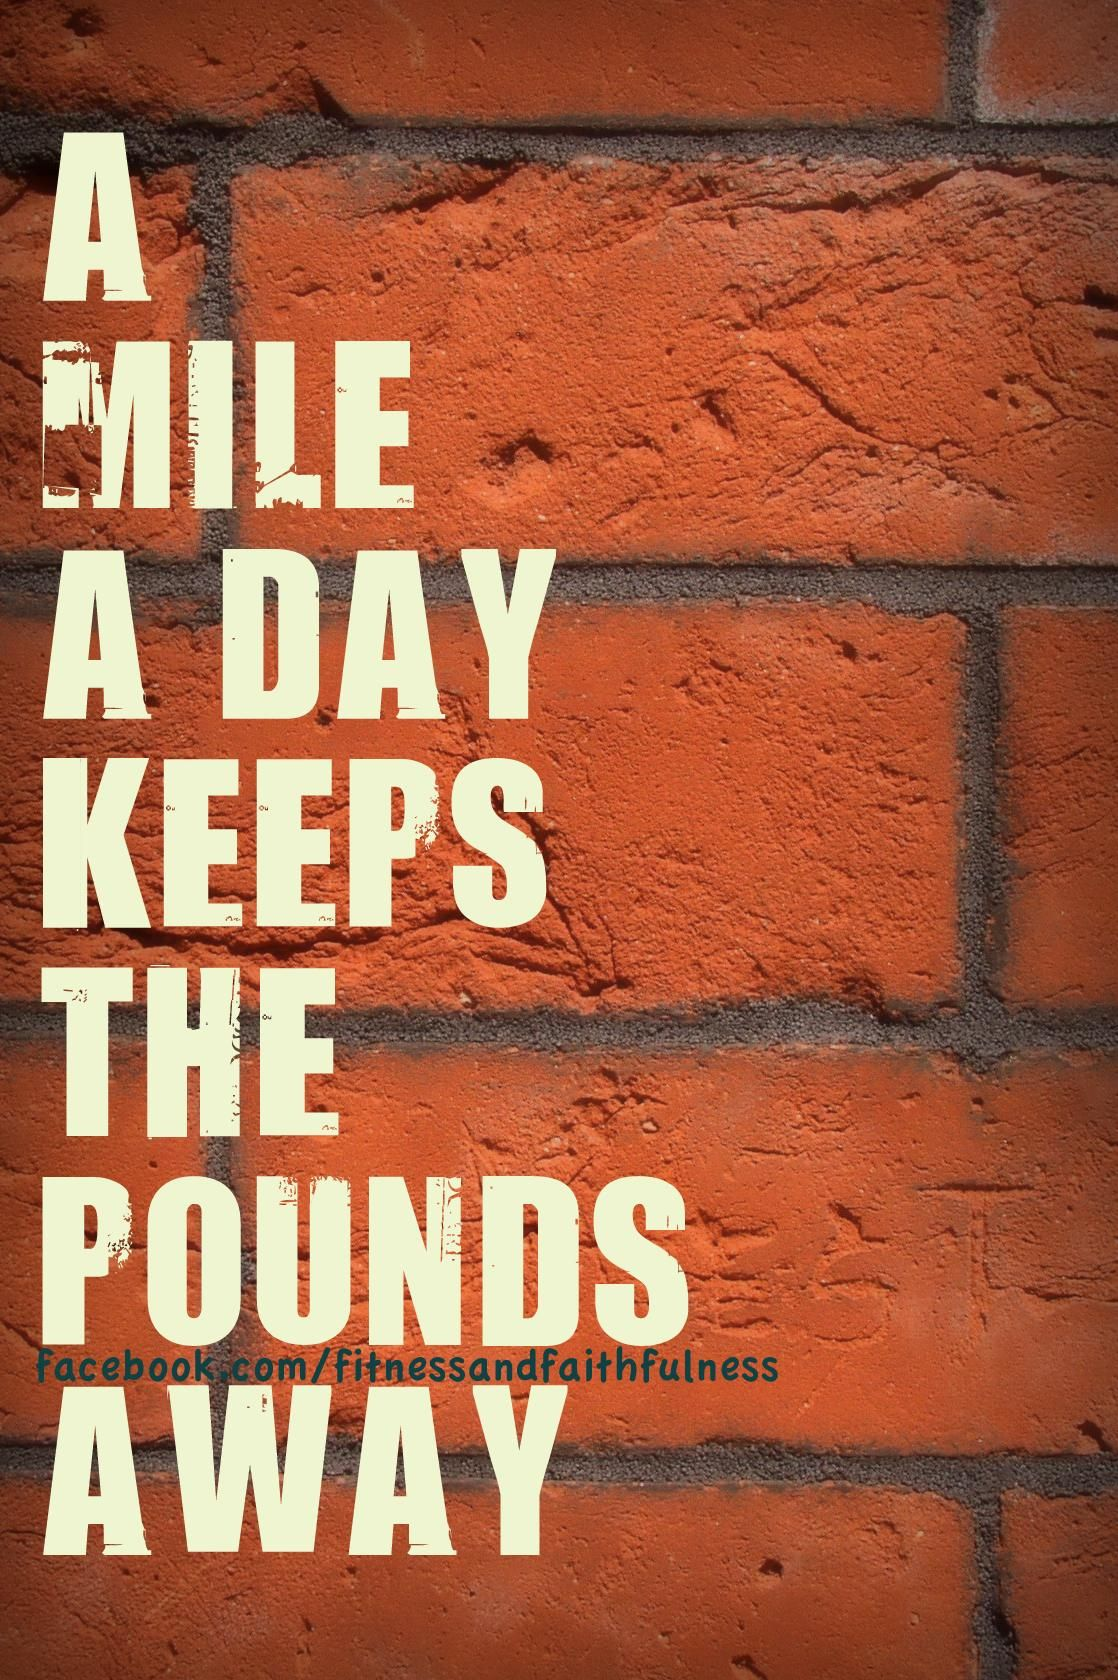 A mile a day keeps the pounds away, so more than 2 miles today must be good! :)